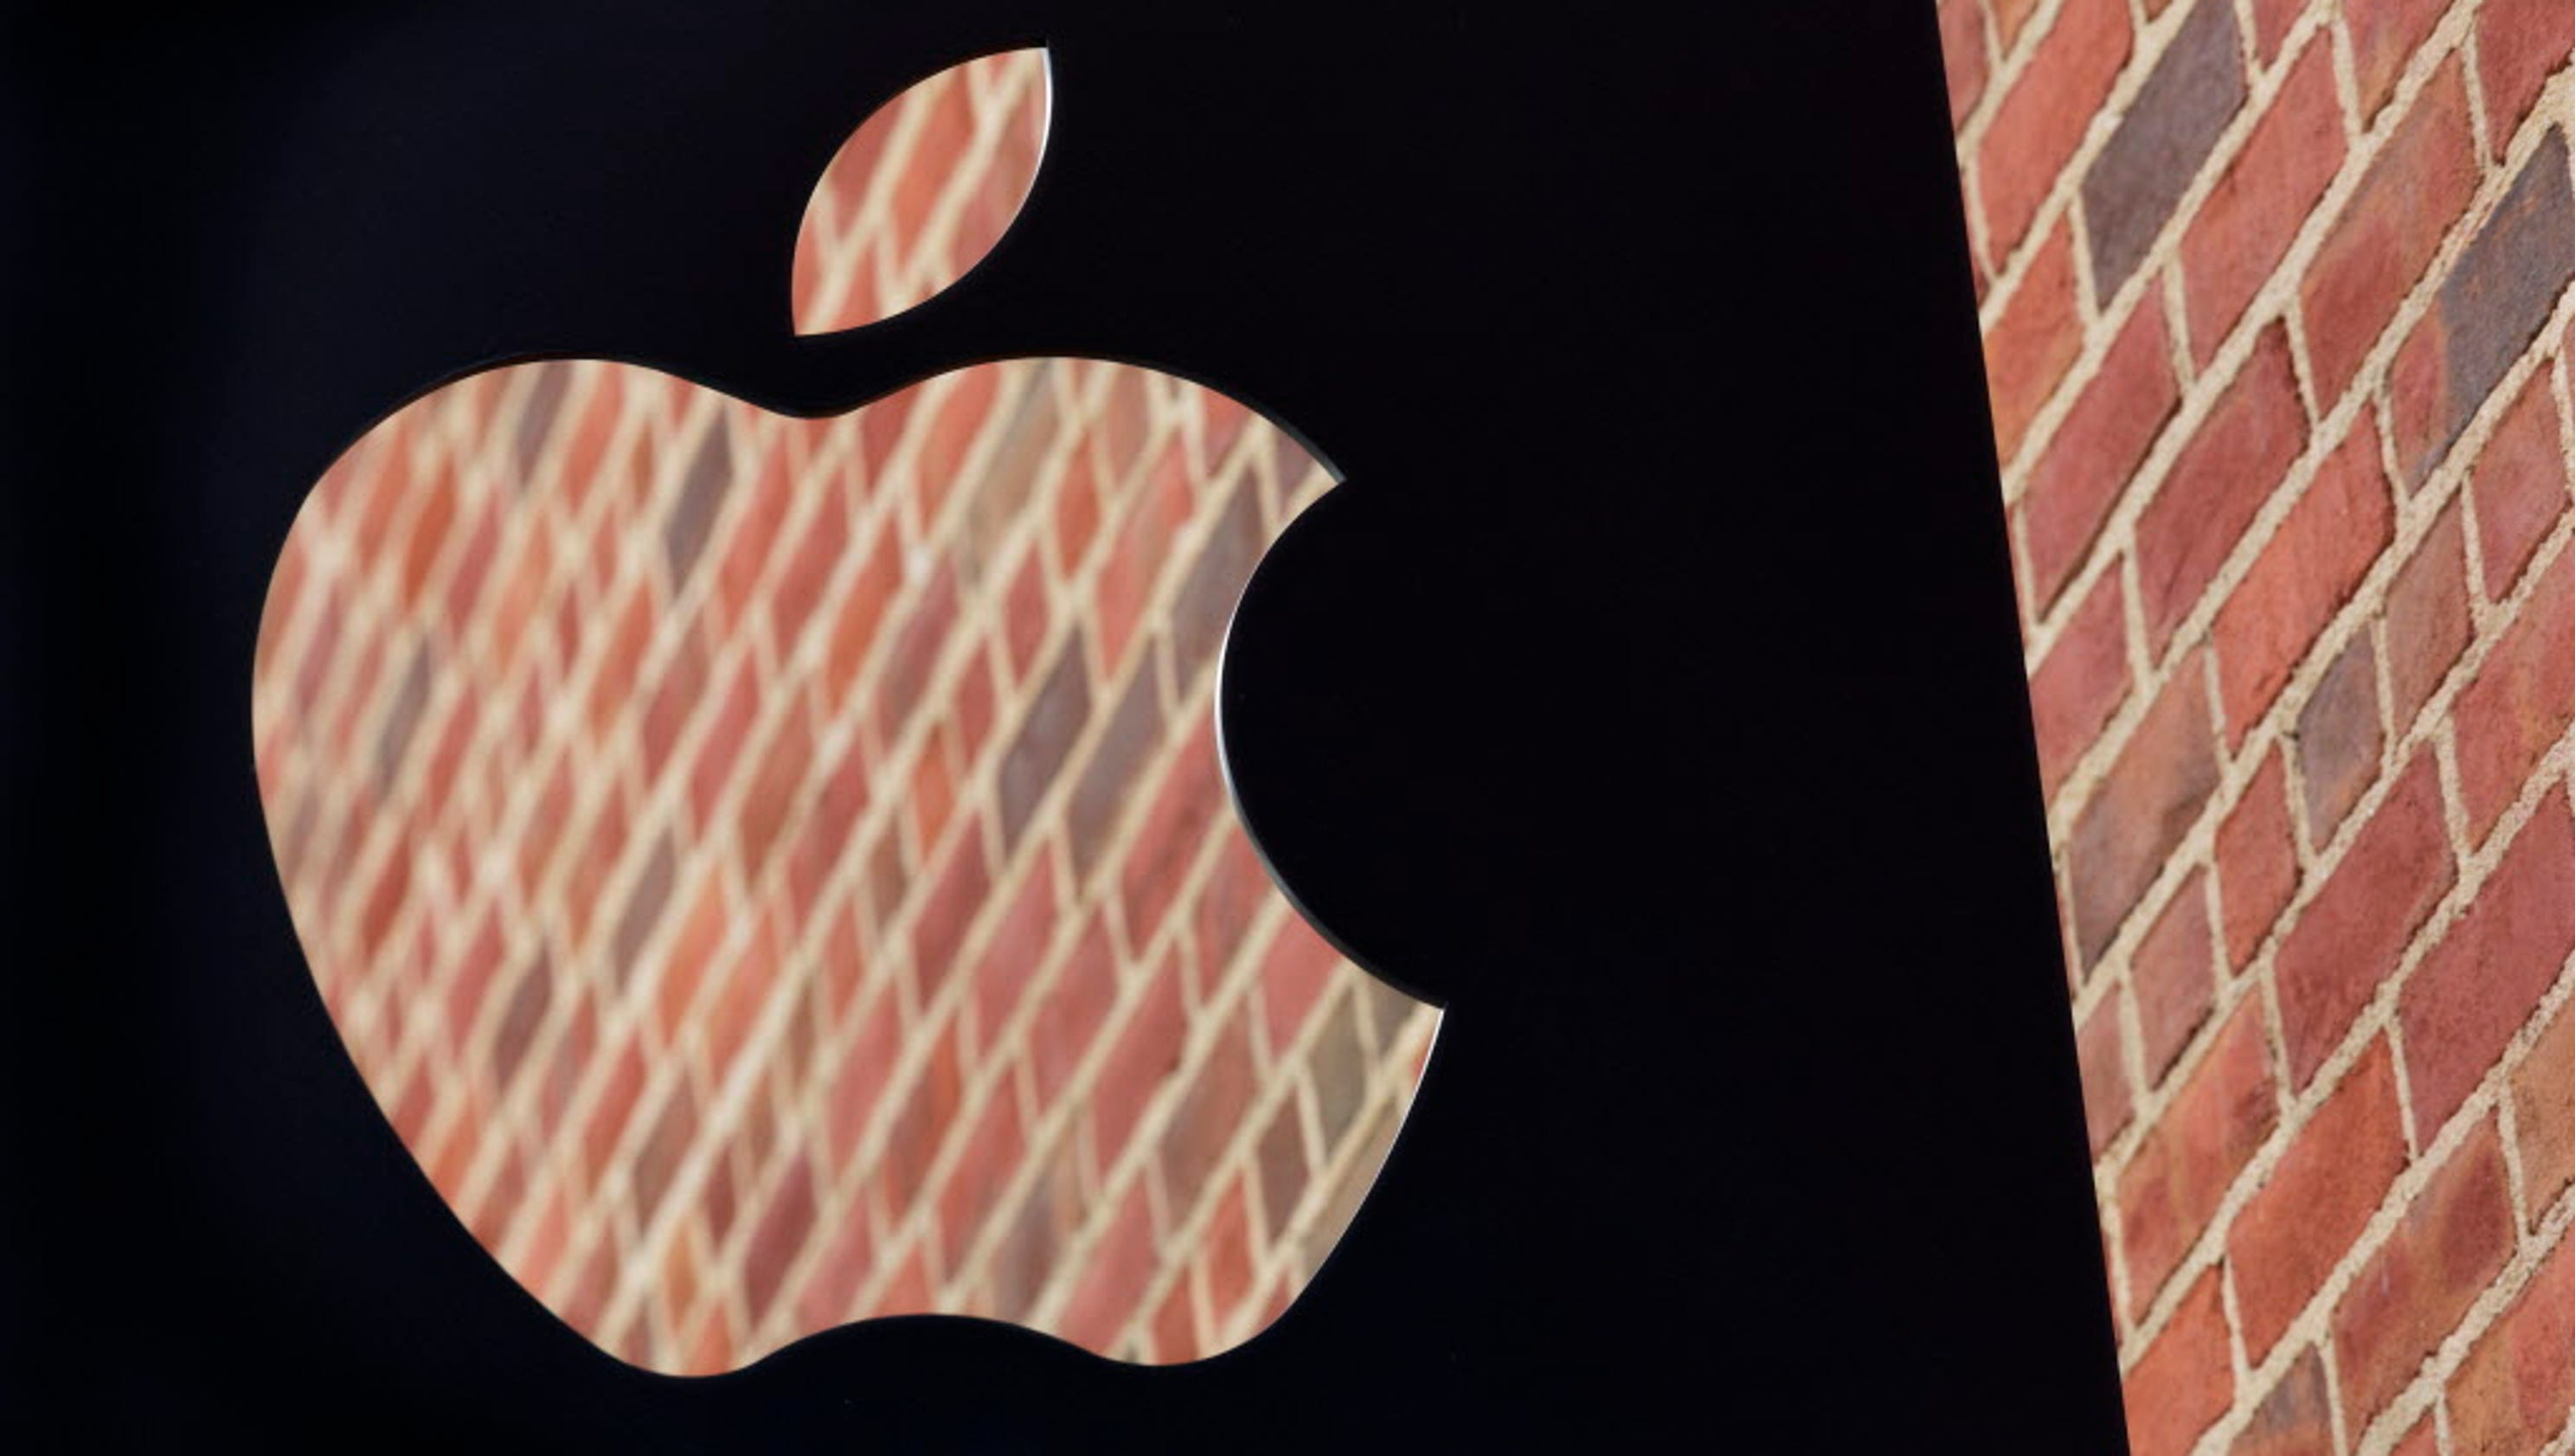 Apple stock on fire from samsungs flames buycottarizona Gallery